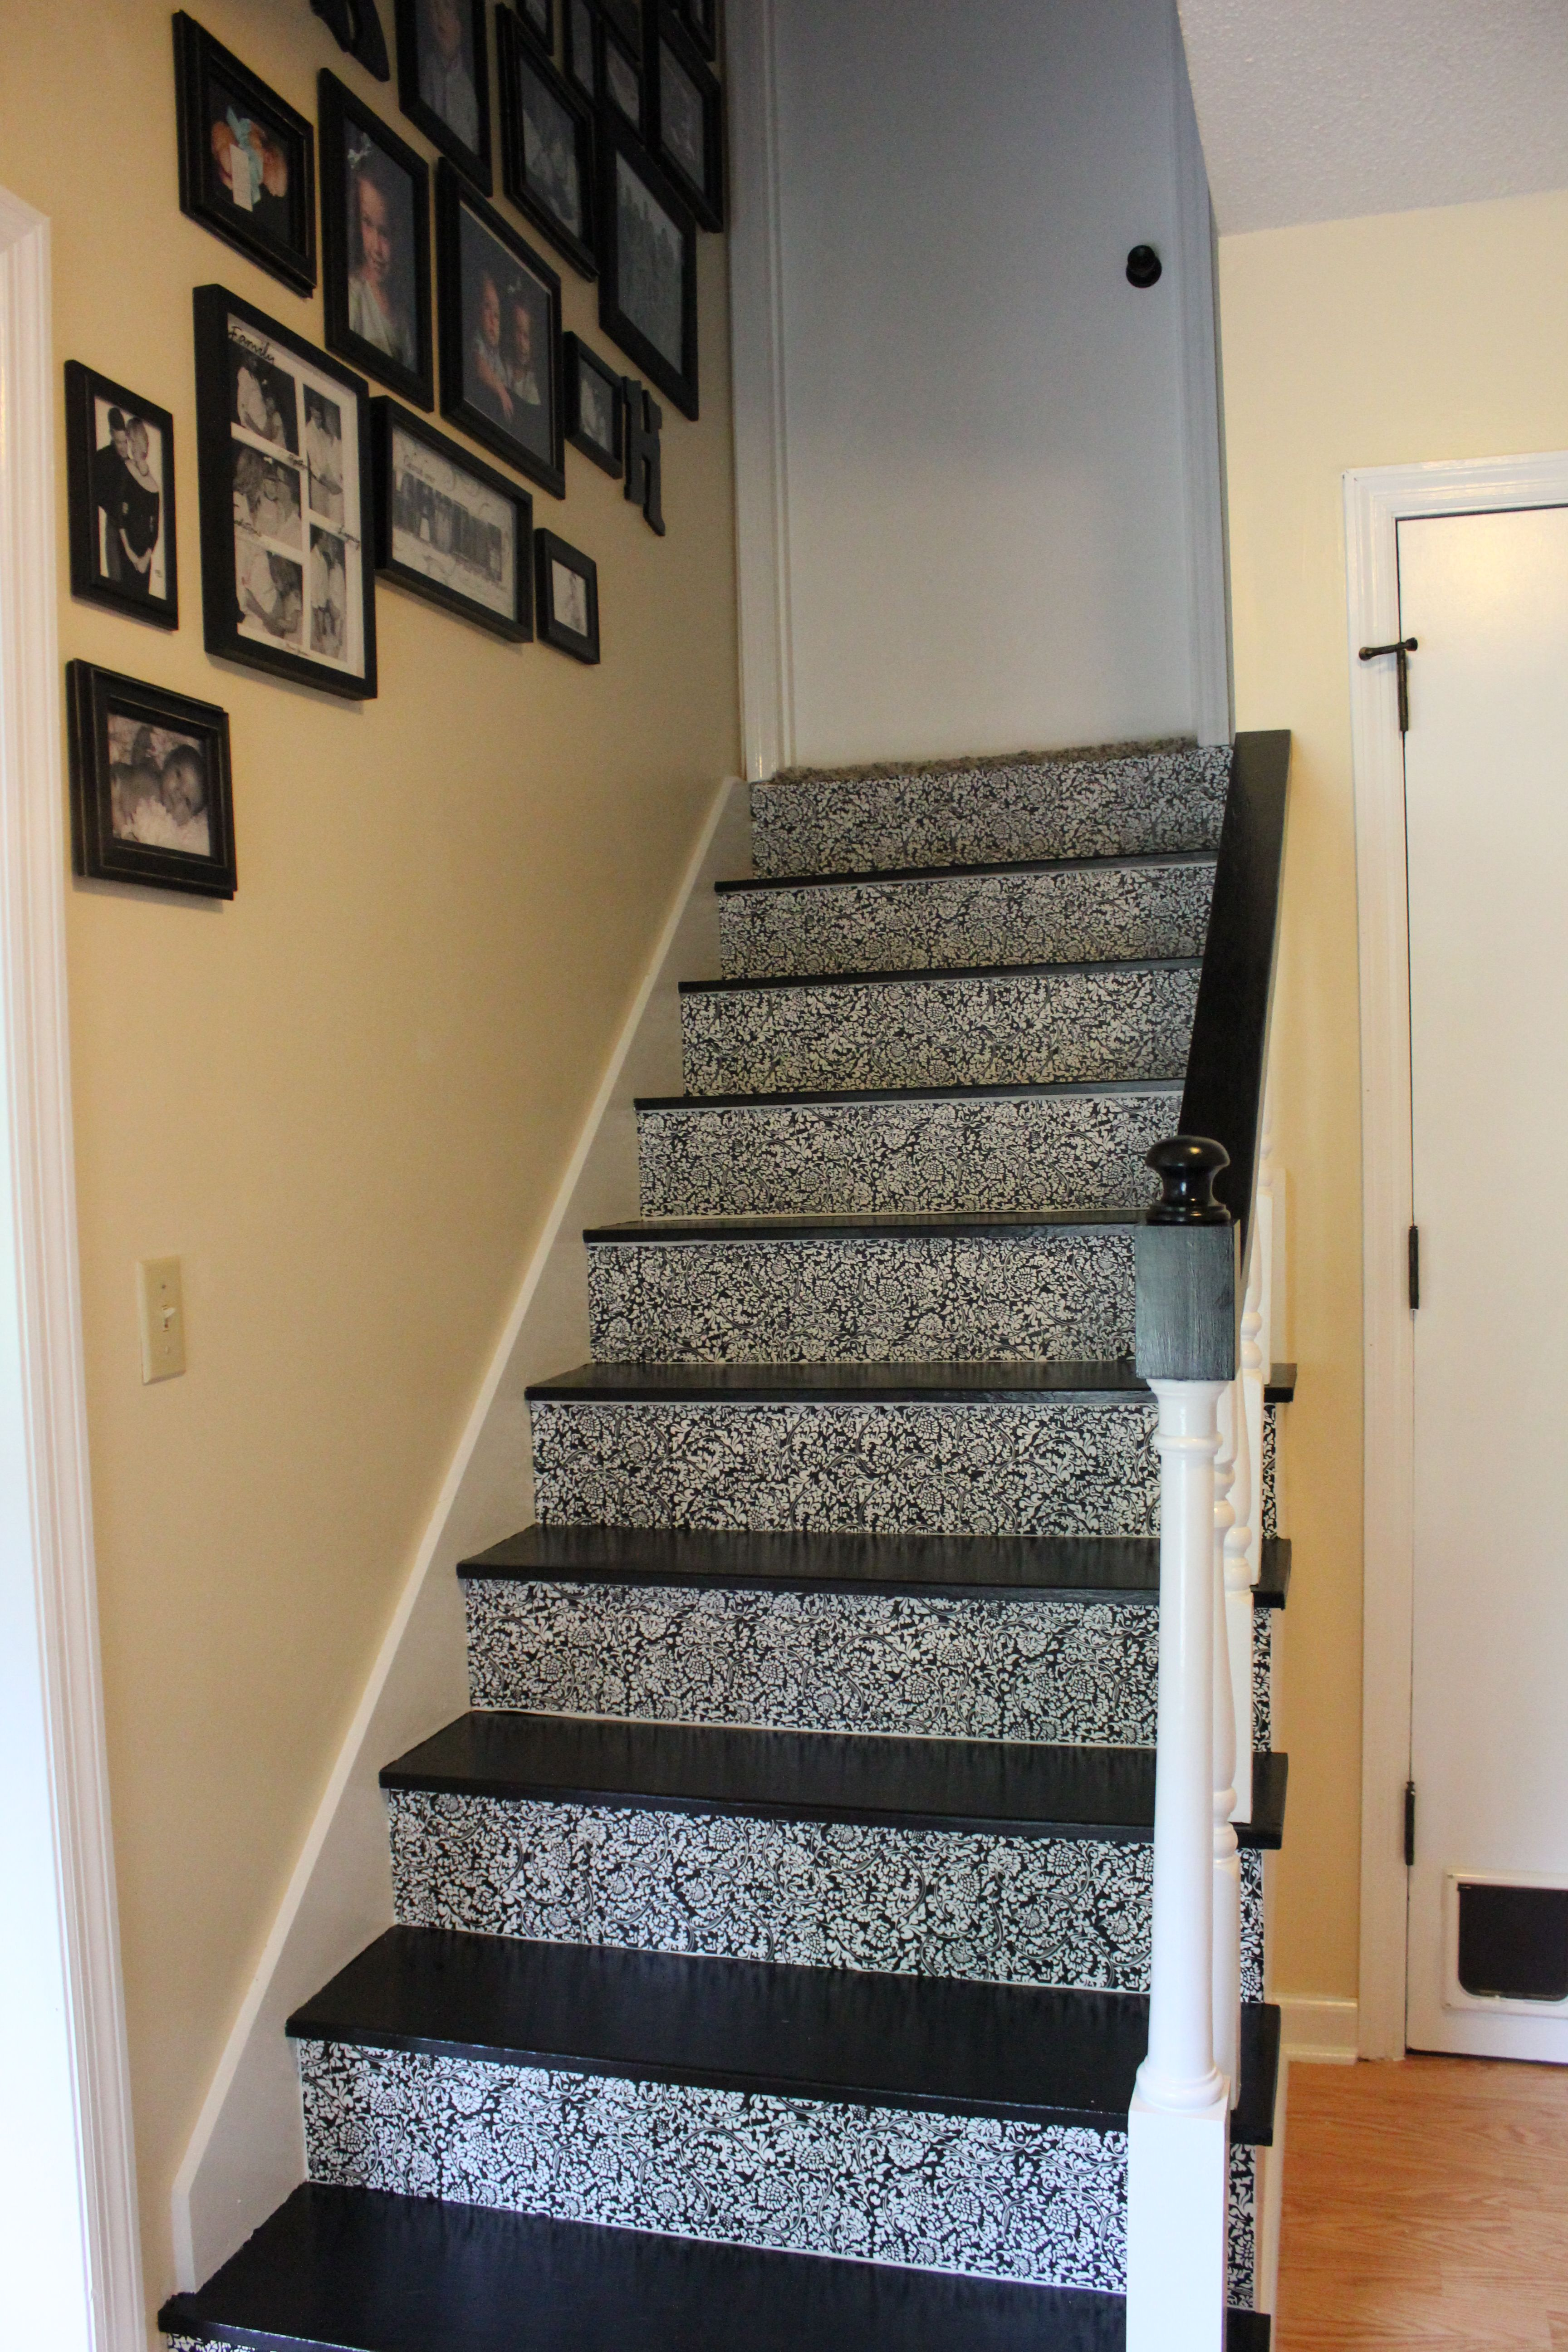 Stairs With Contact Paper Risers Obviously Not This Contact Paper Stairs Home House